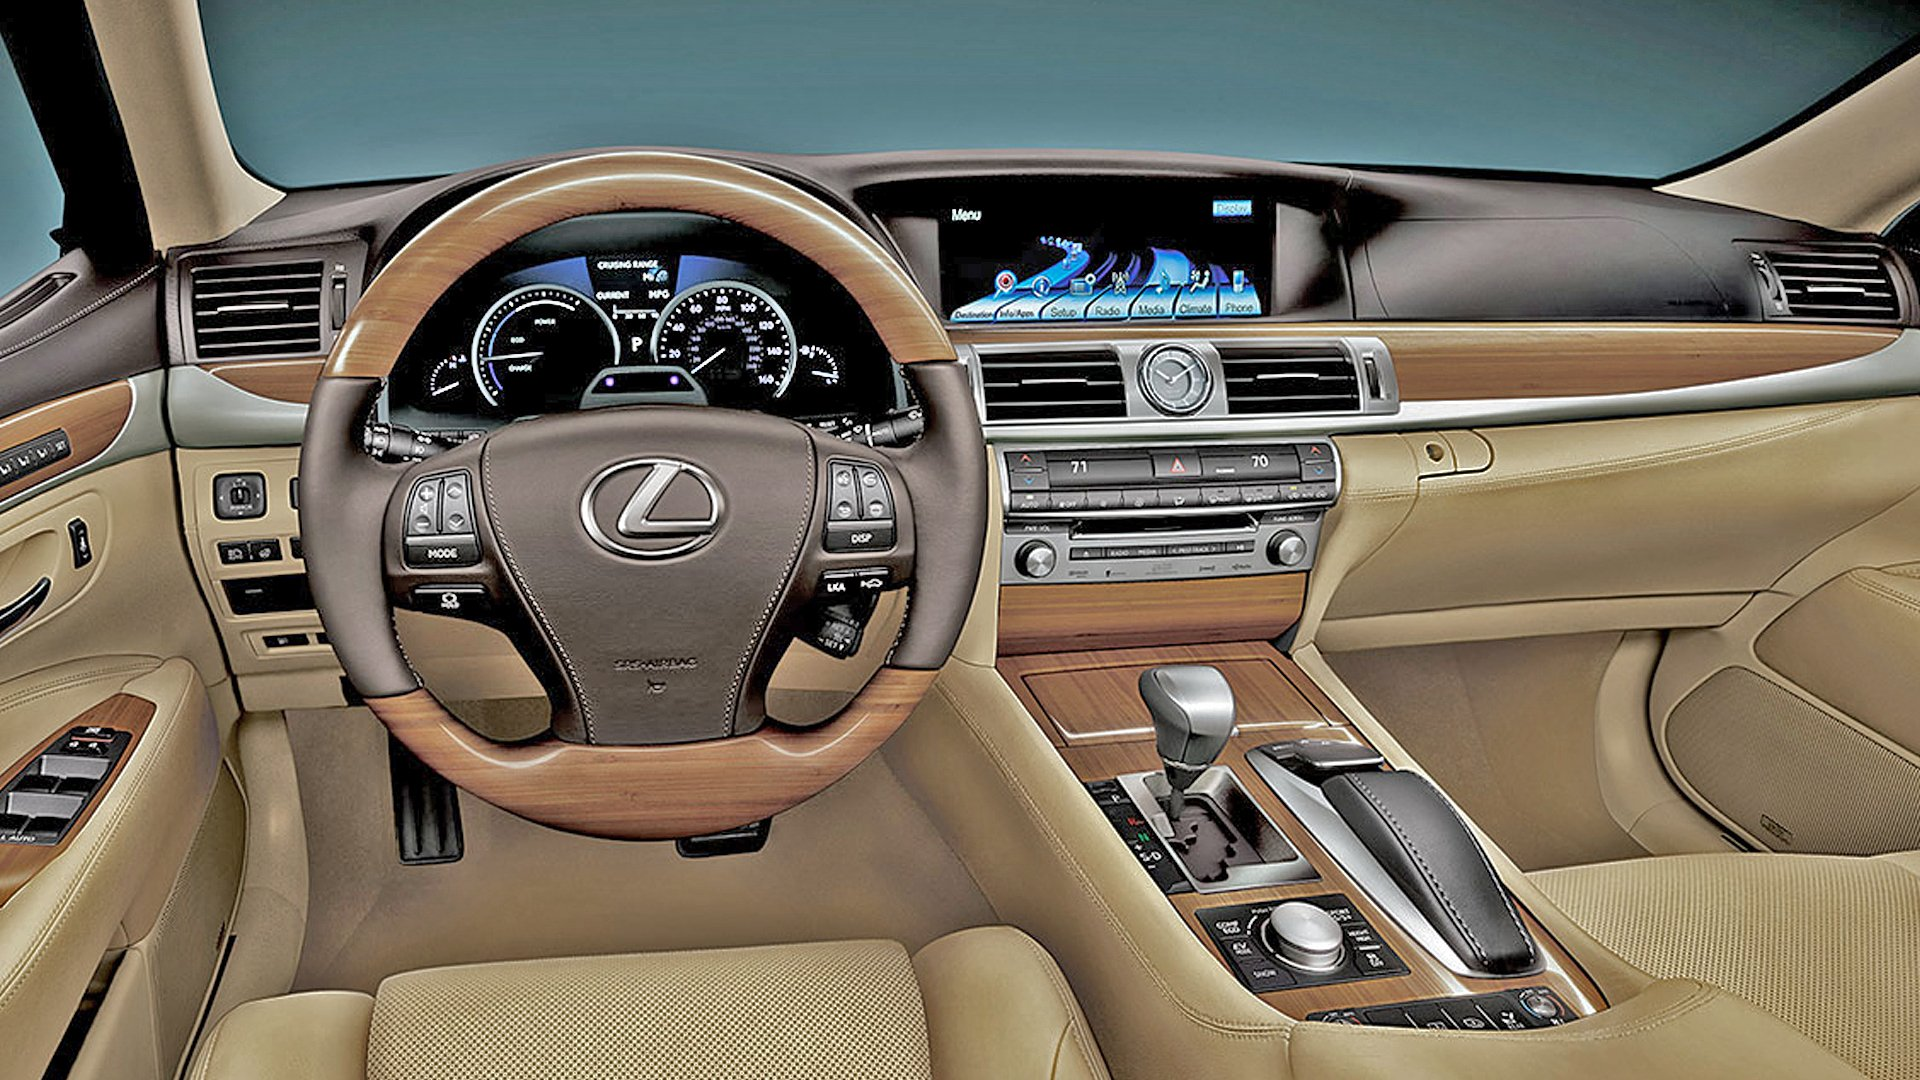 New 2019 Lexus LS 460 Interior Design